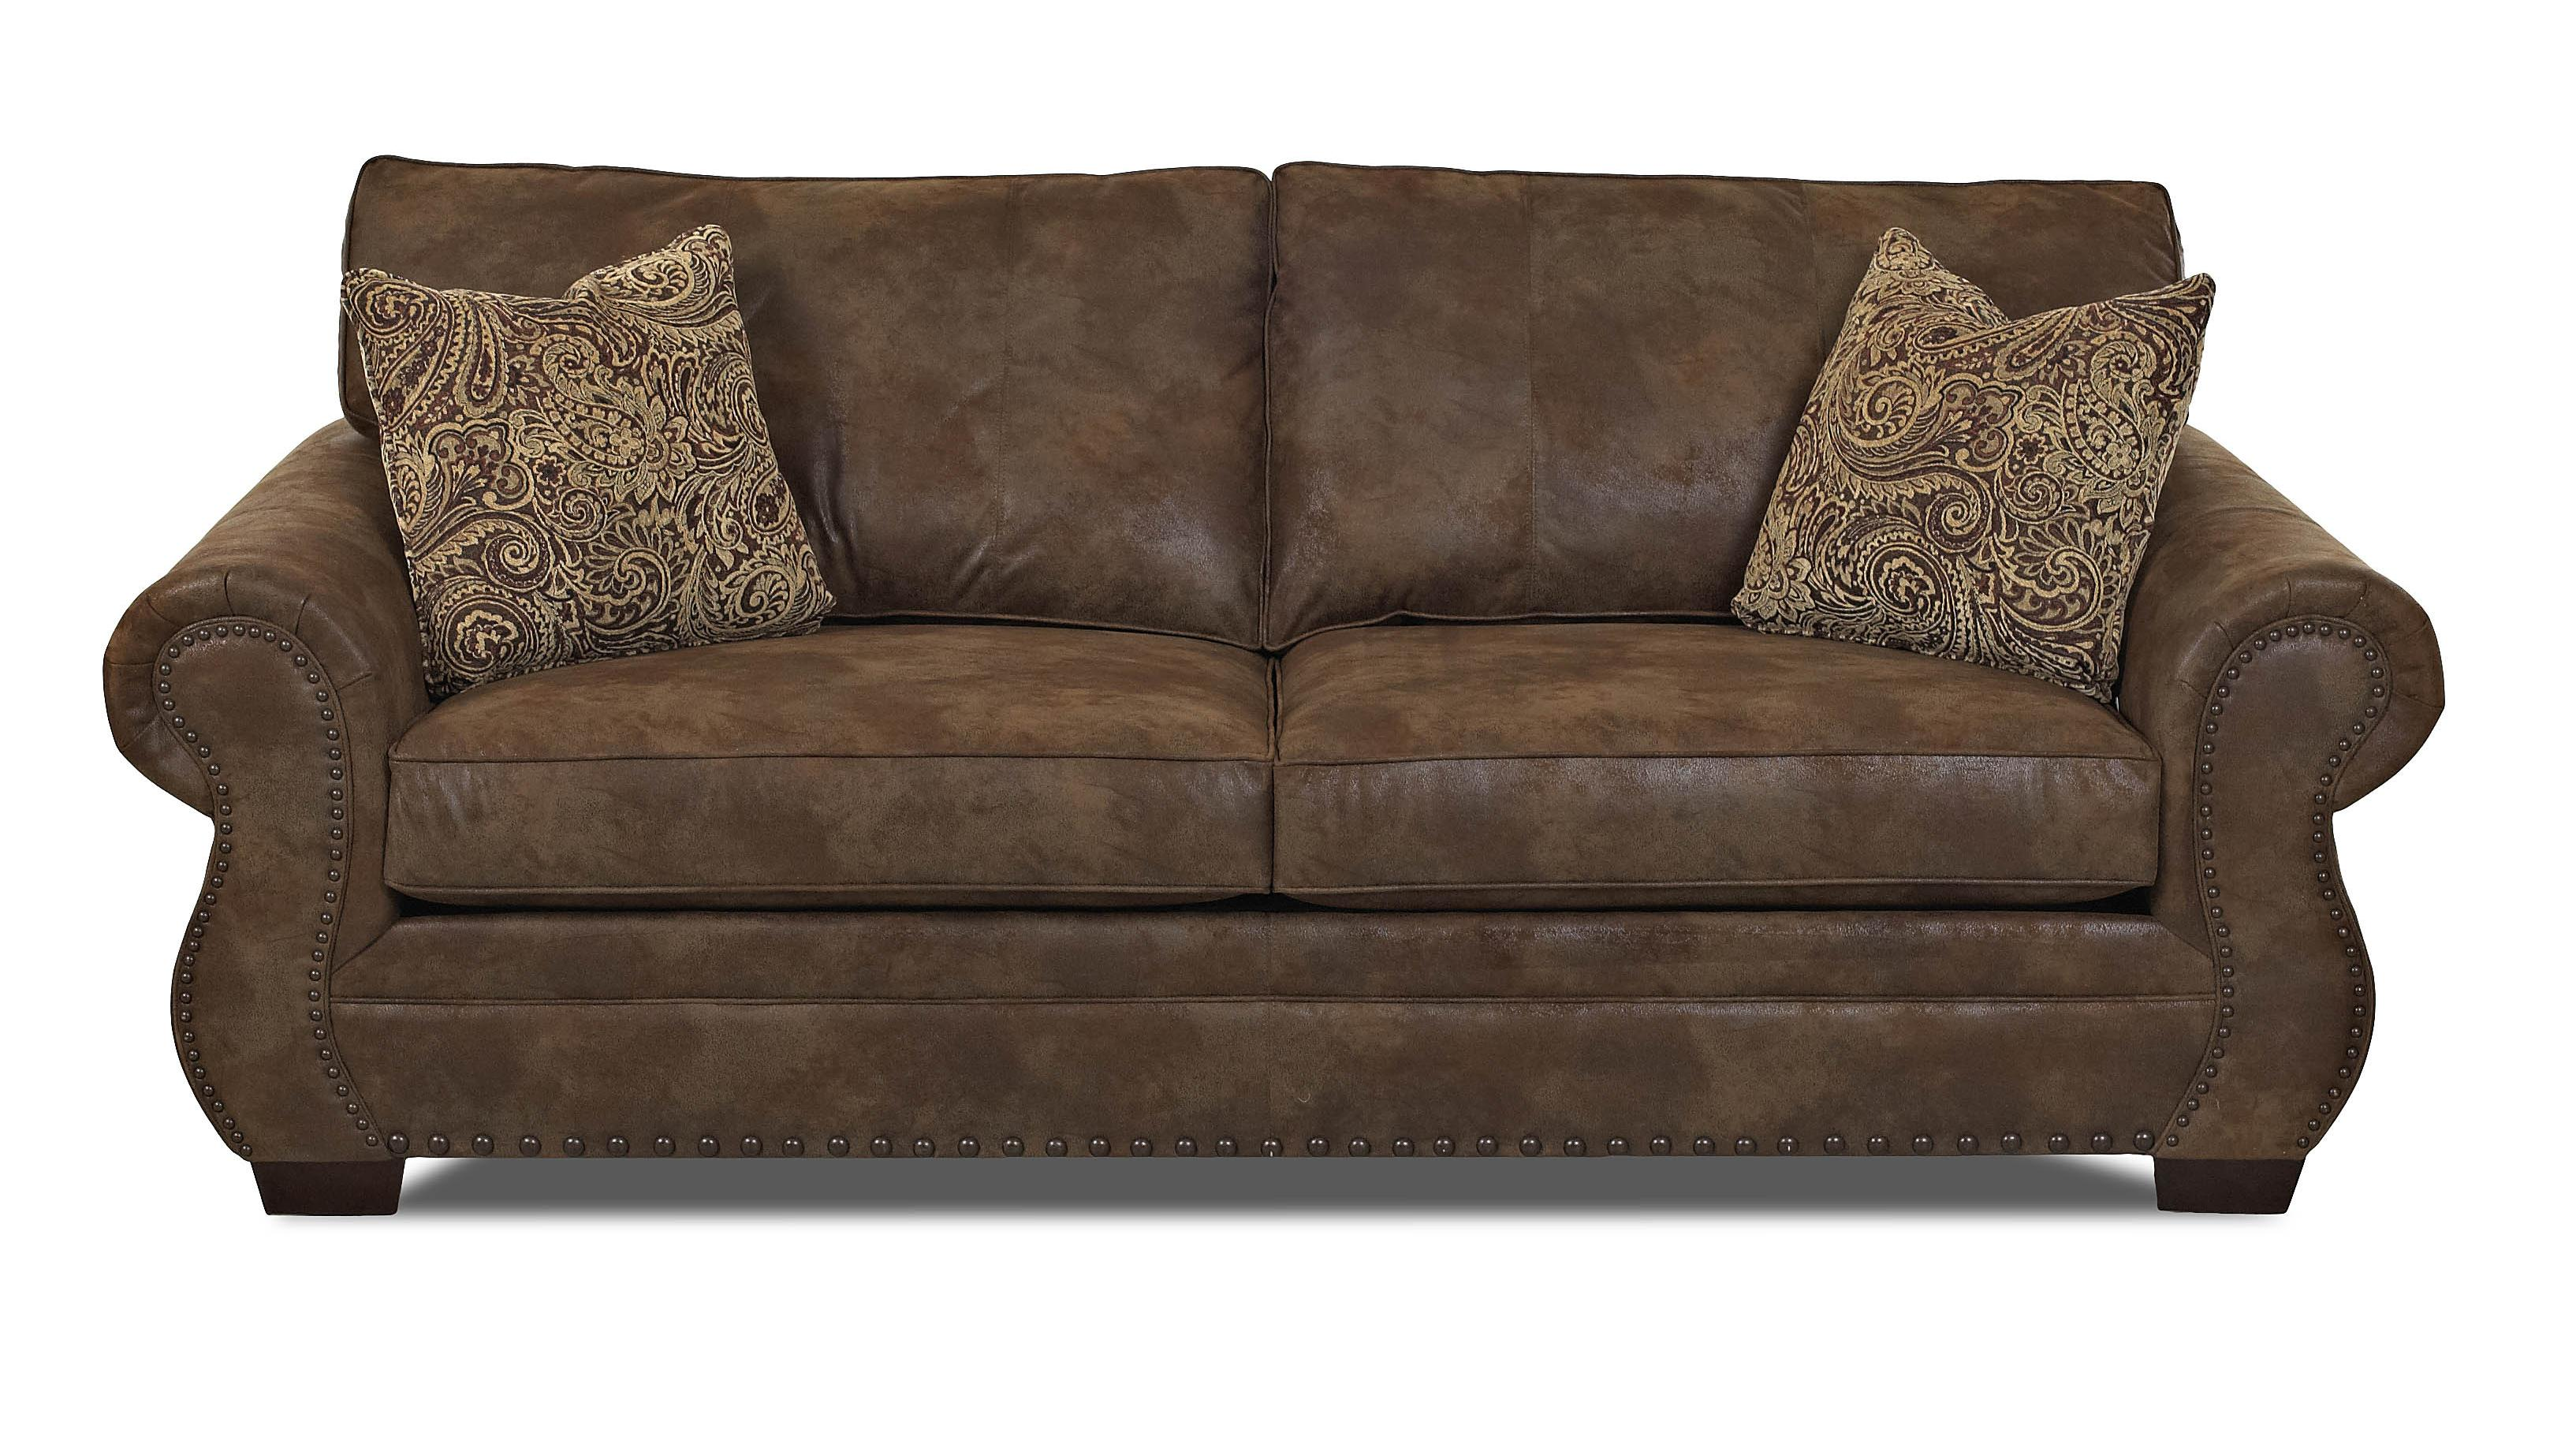 Traditional Sofa with Rolled Arms and Nailhead Trim by Klaussner